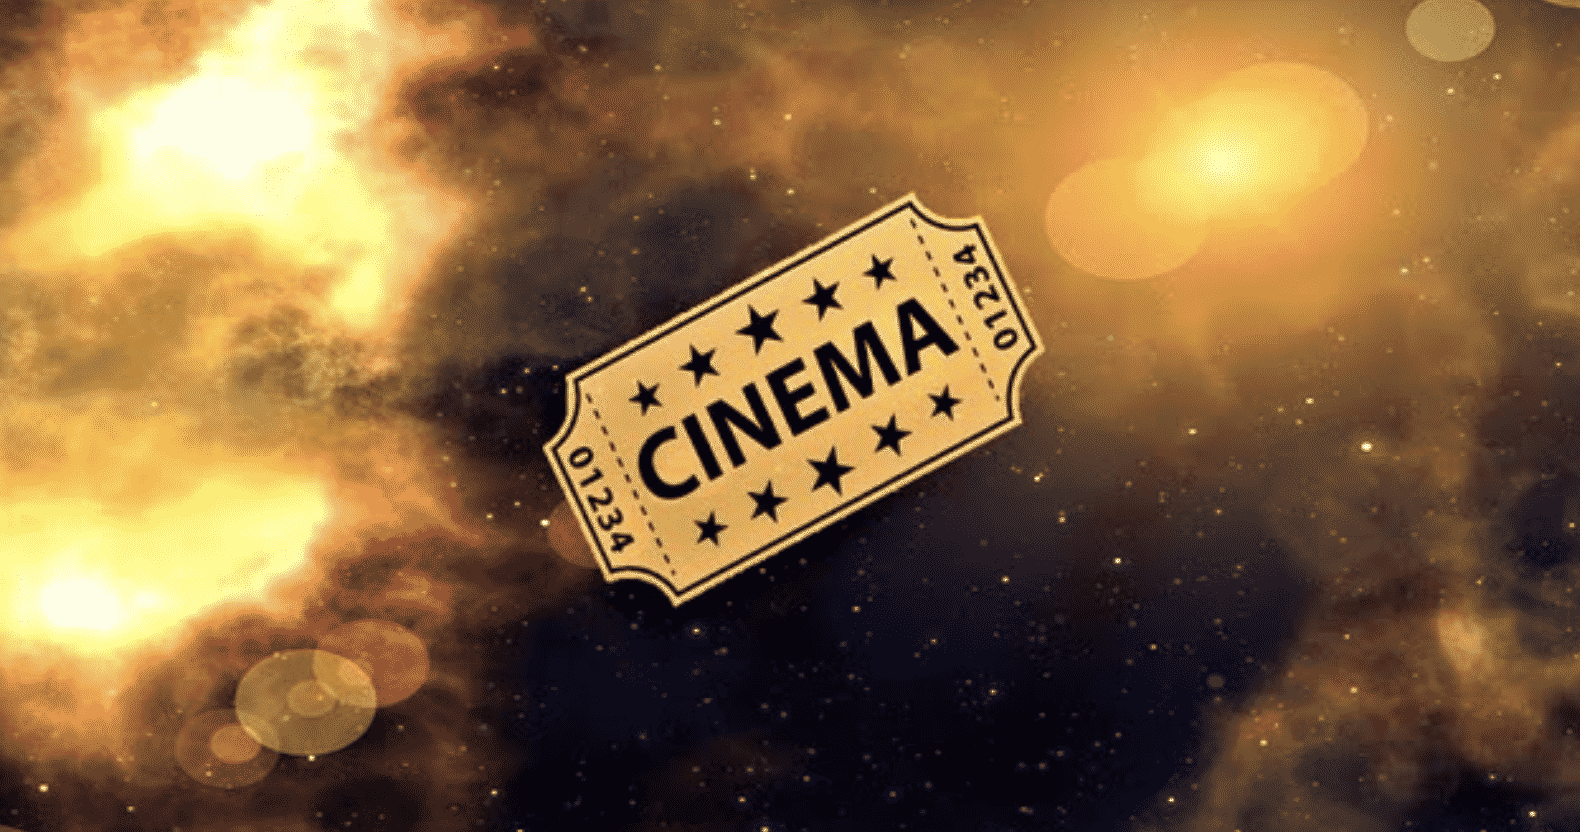 Cinema HD APK Is All You Need For Free HD Movies & Shows